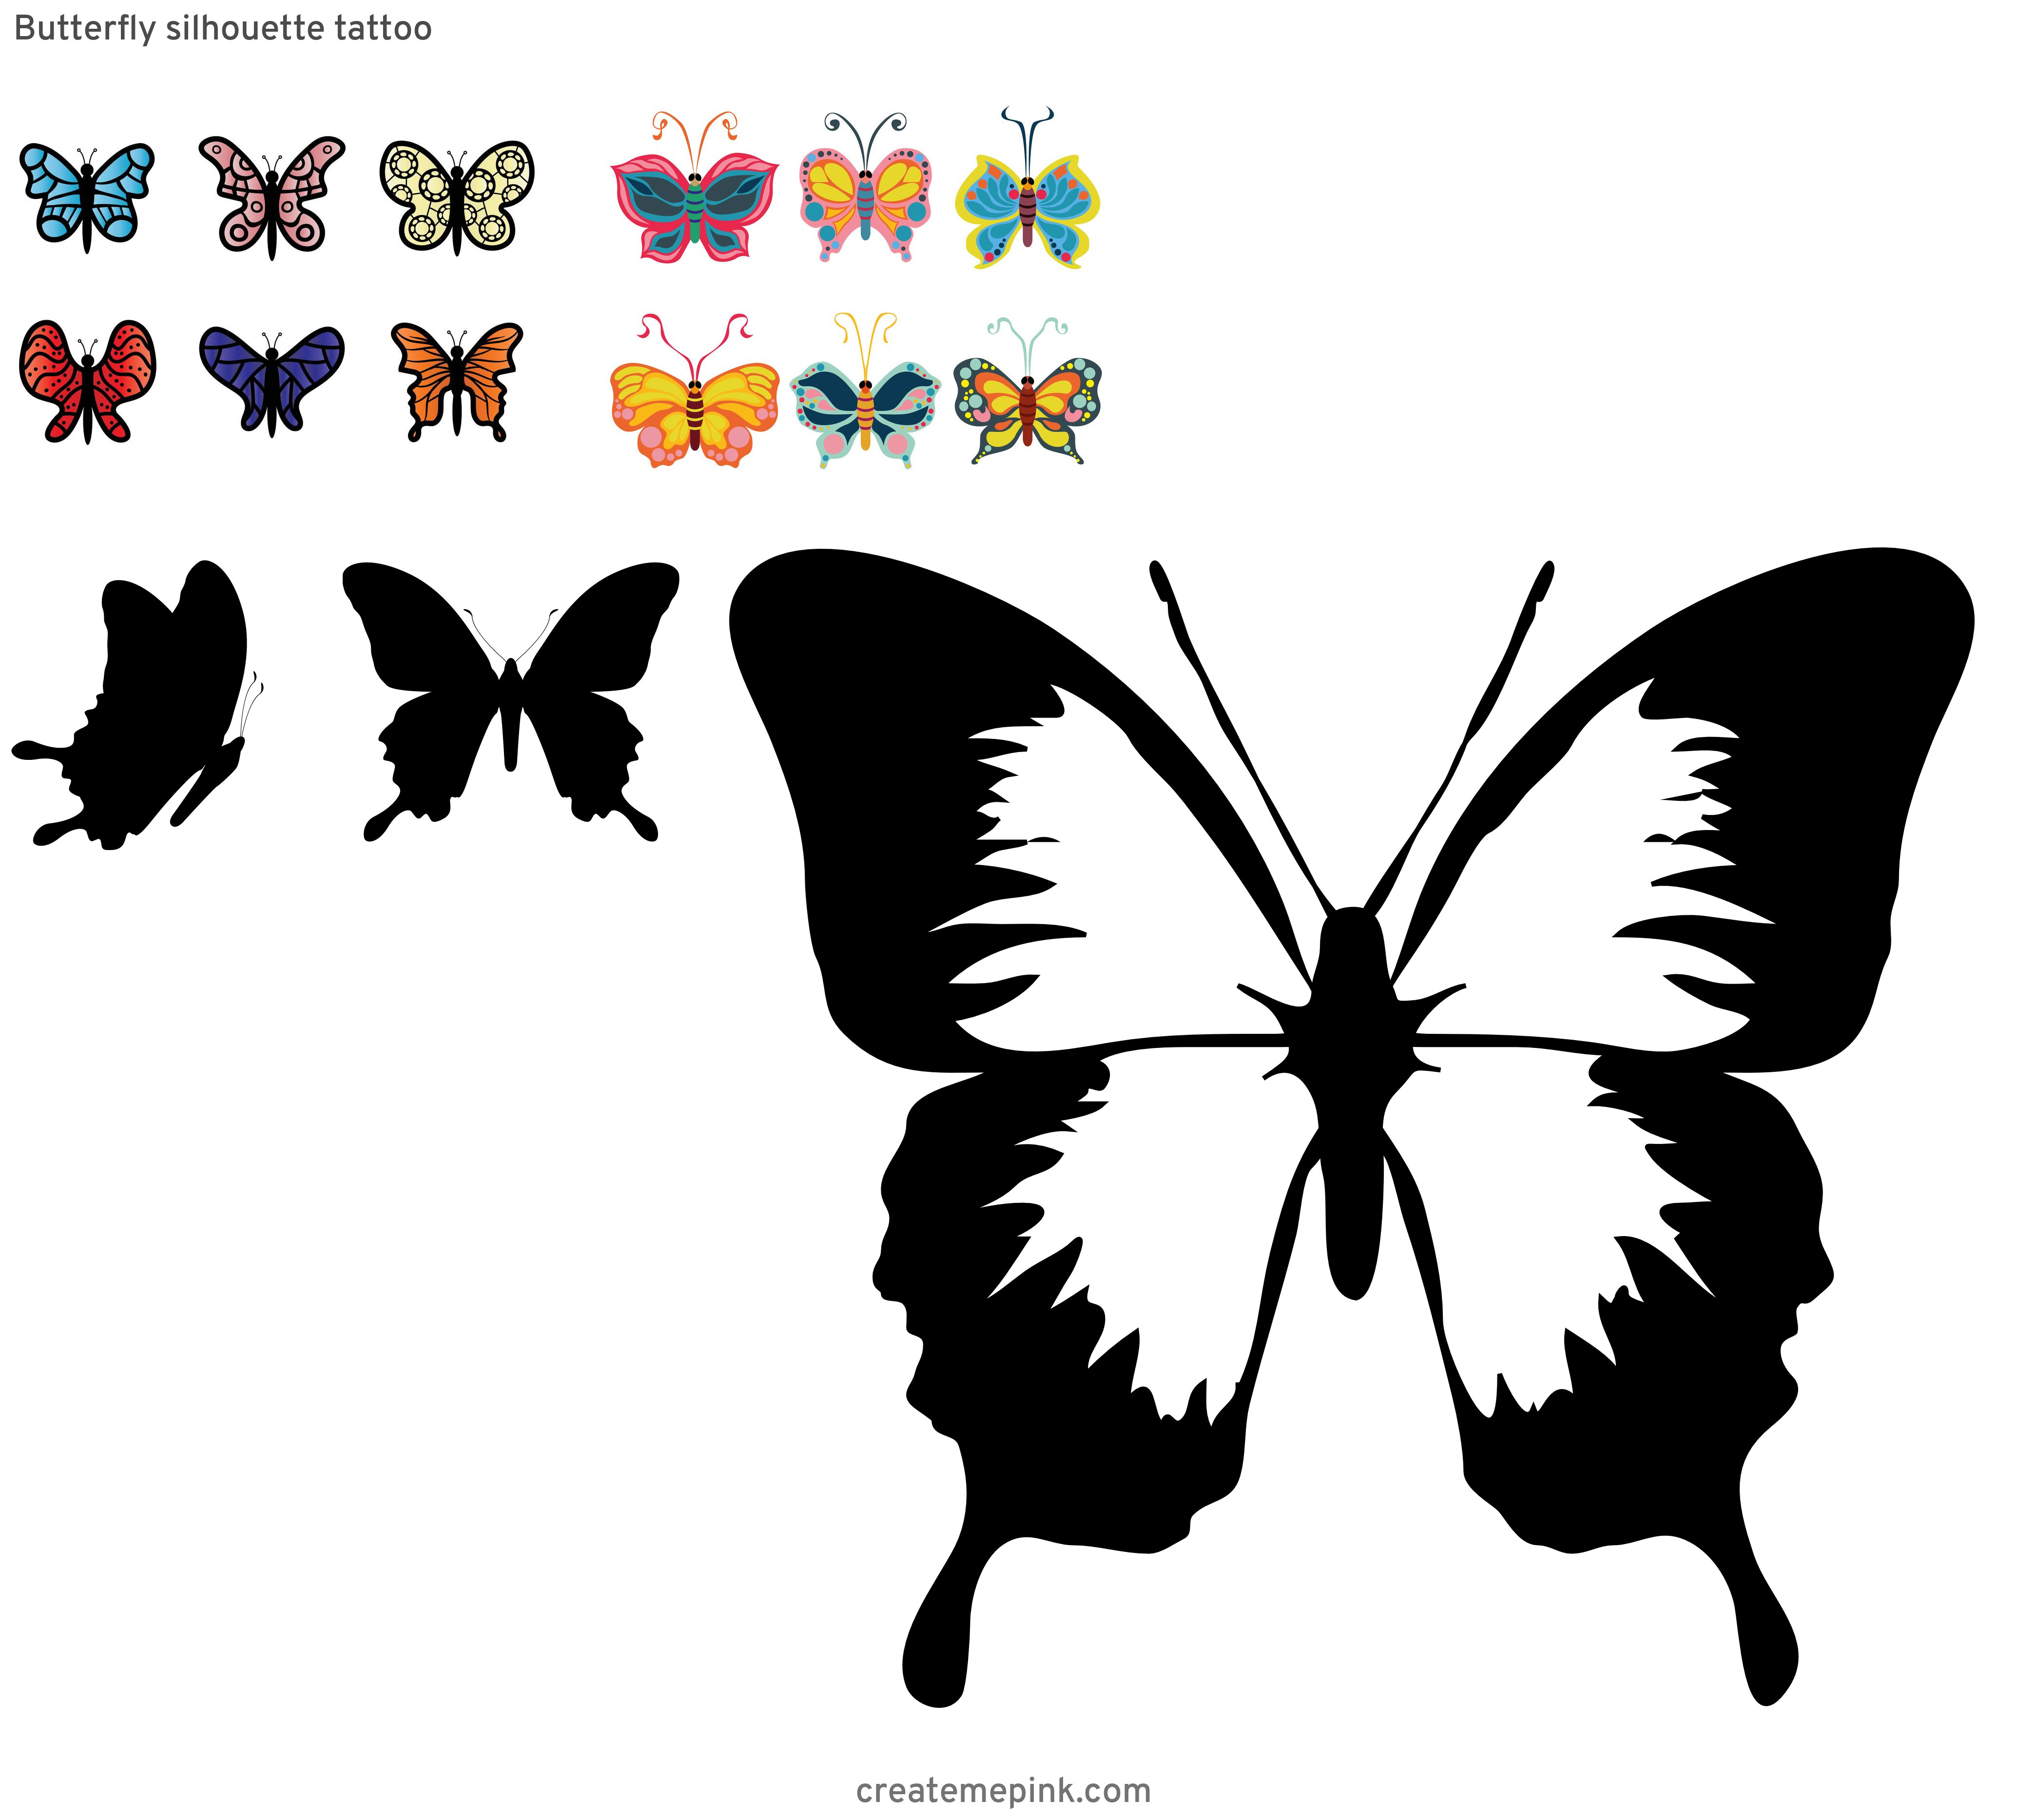 Butterfly Vector Graphics Clip Art: Butterfly Silhouette Tattoo